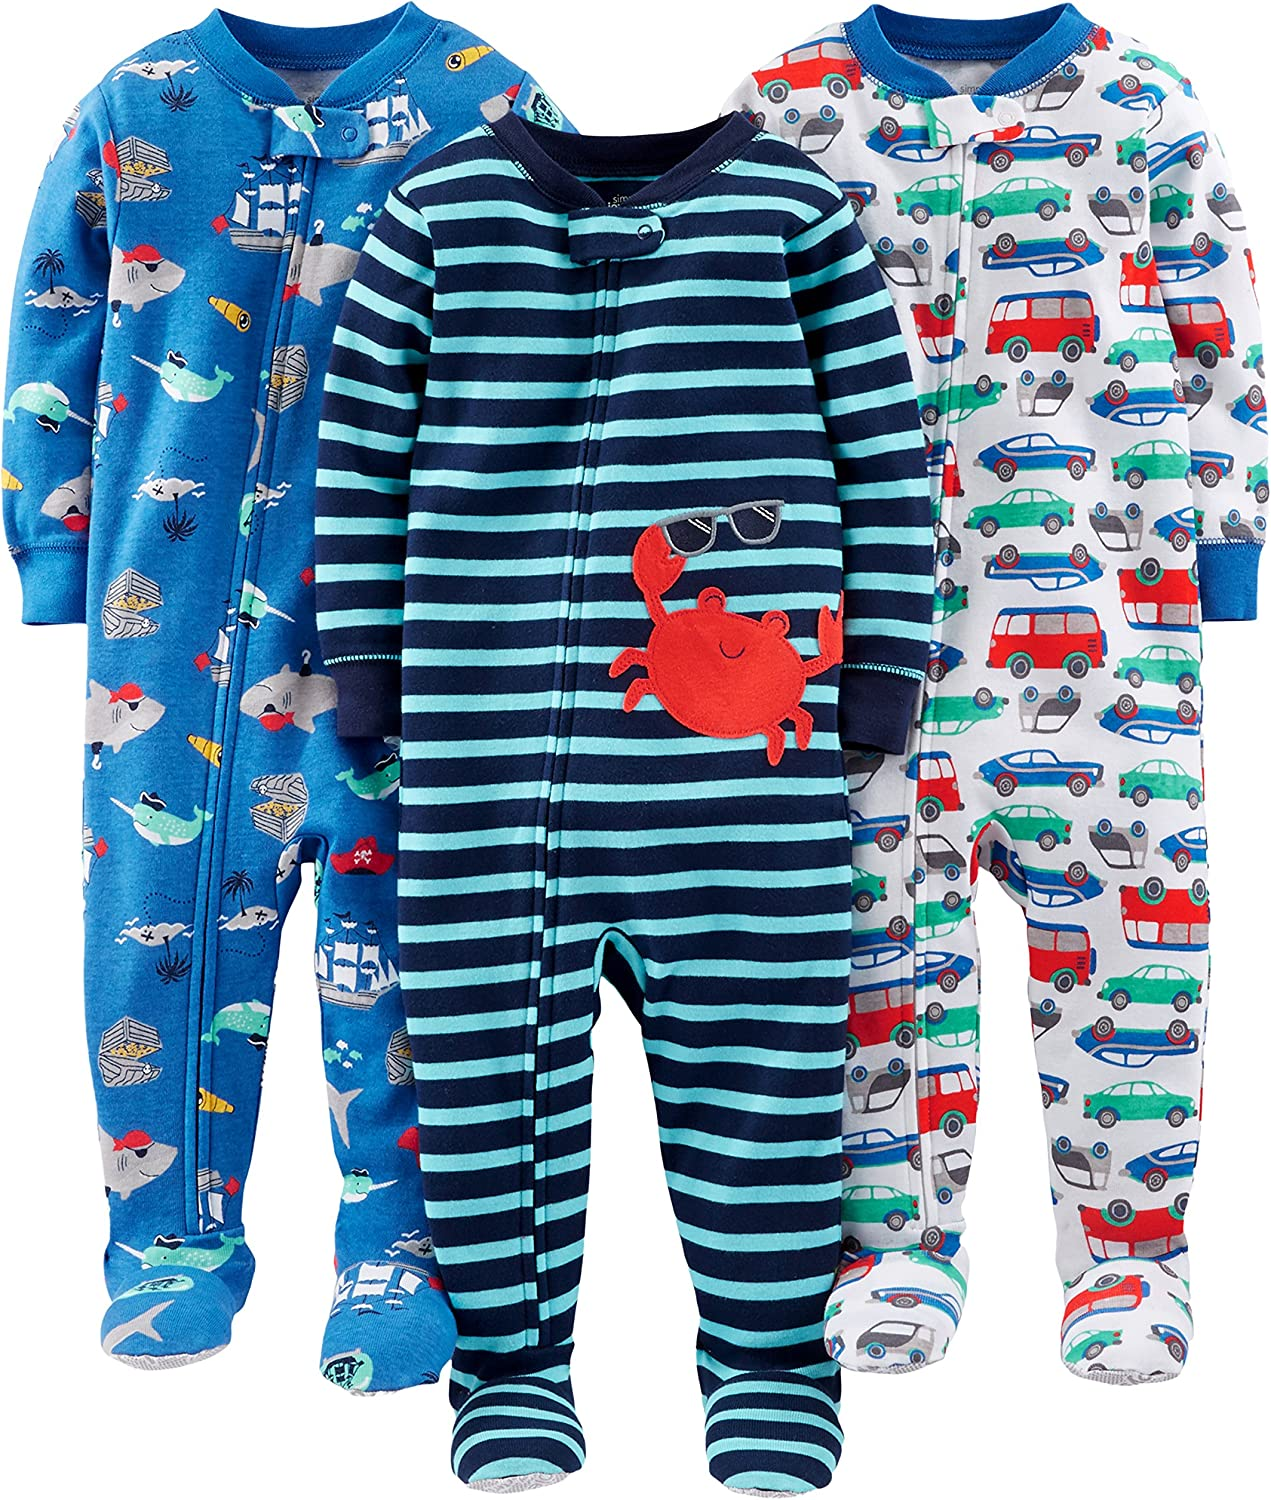 Simple Joys by Carters Baby and Toddler Boys 3-Pack Loose Fit Polyester Jersey Footed Pajamas